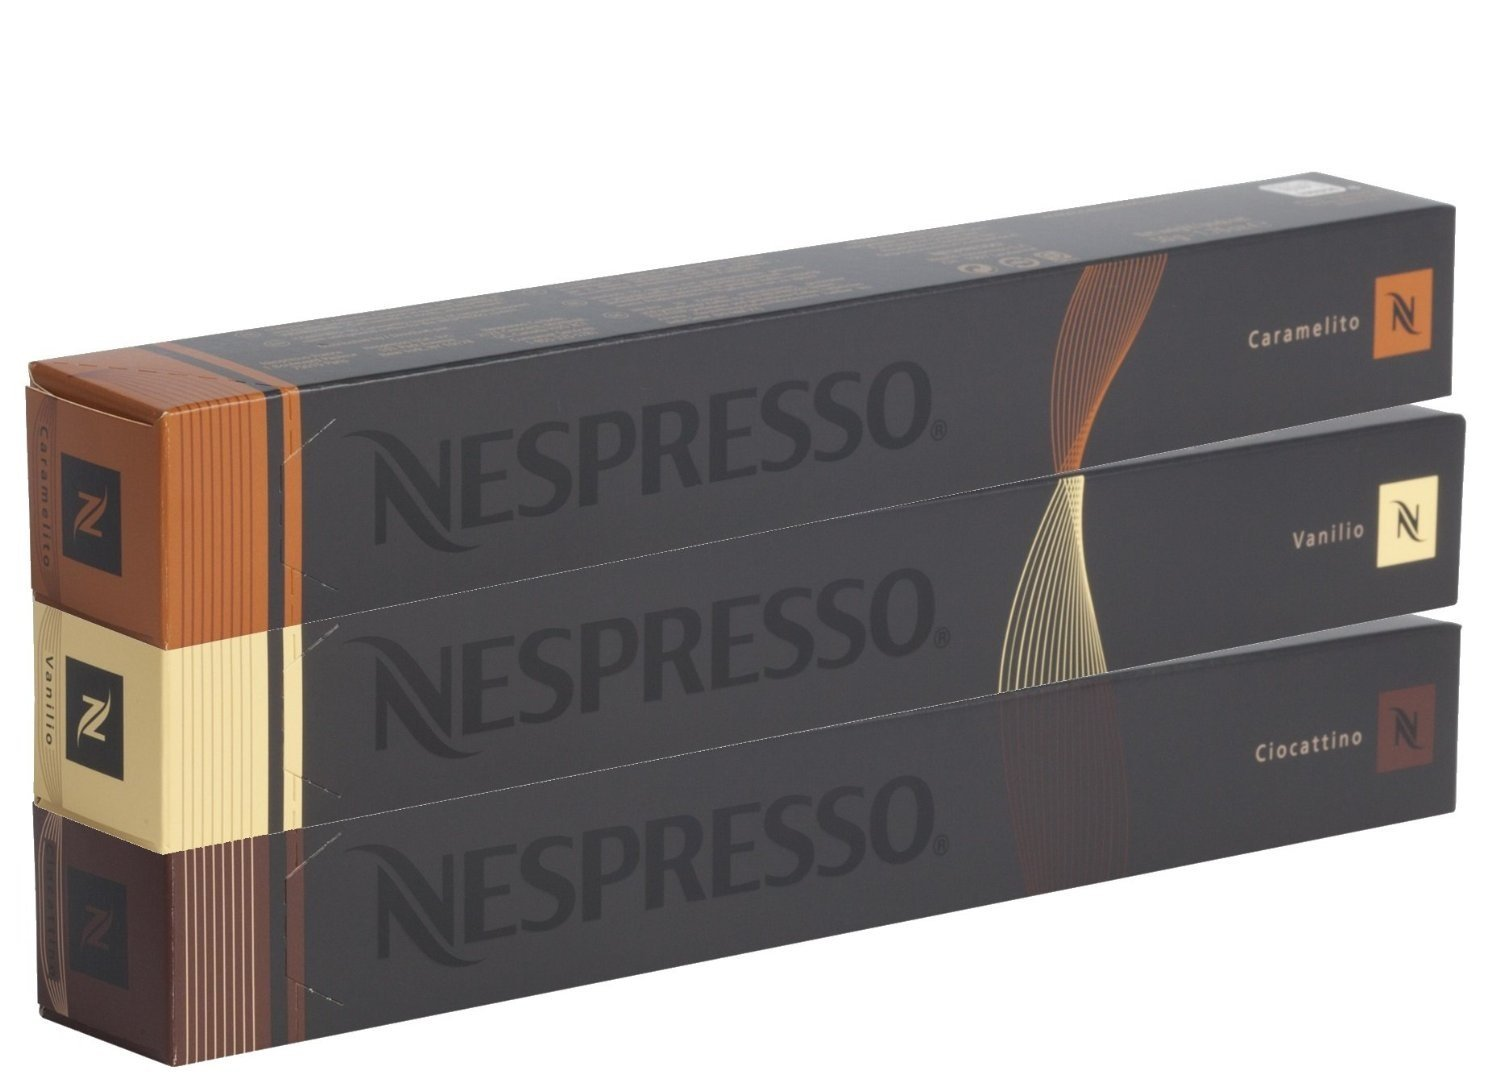 Nespresso Original Variations coffee pods and capsules